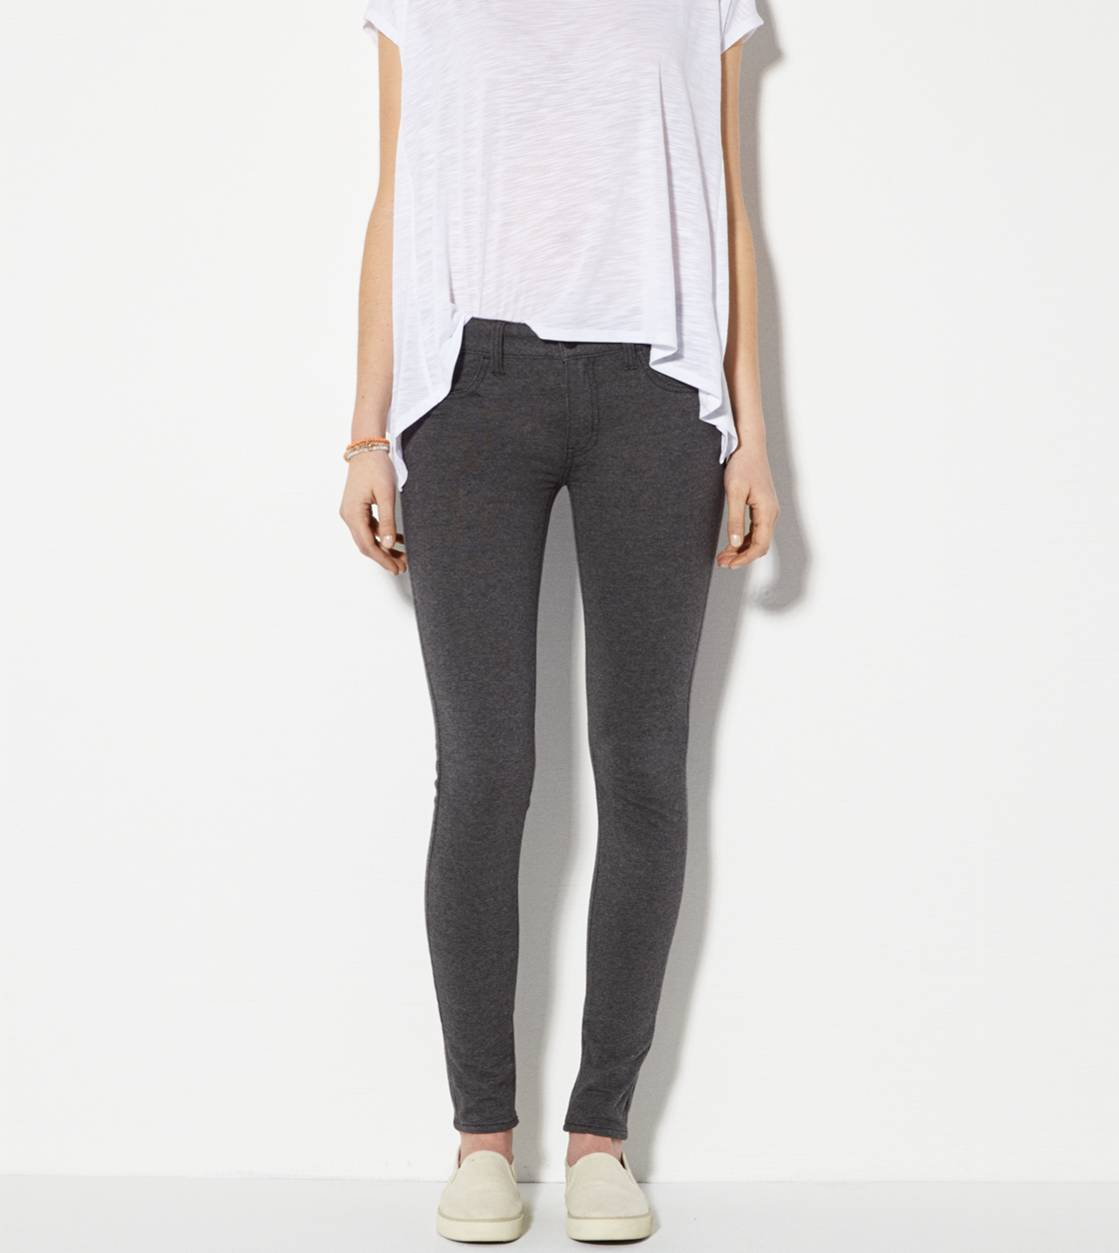 Heather Grey Knit Jegging